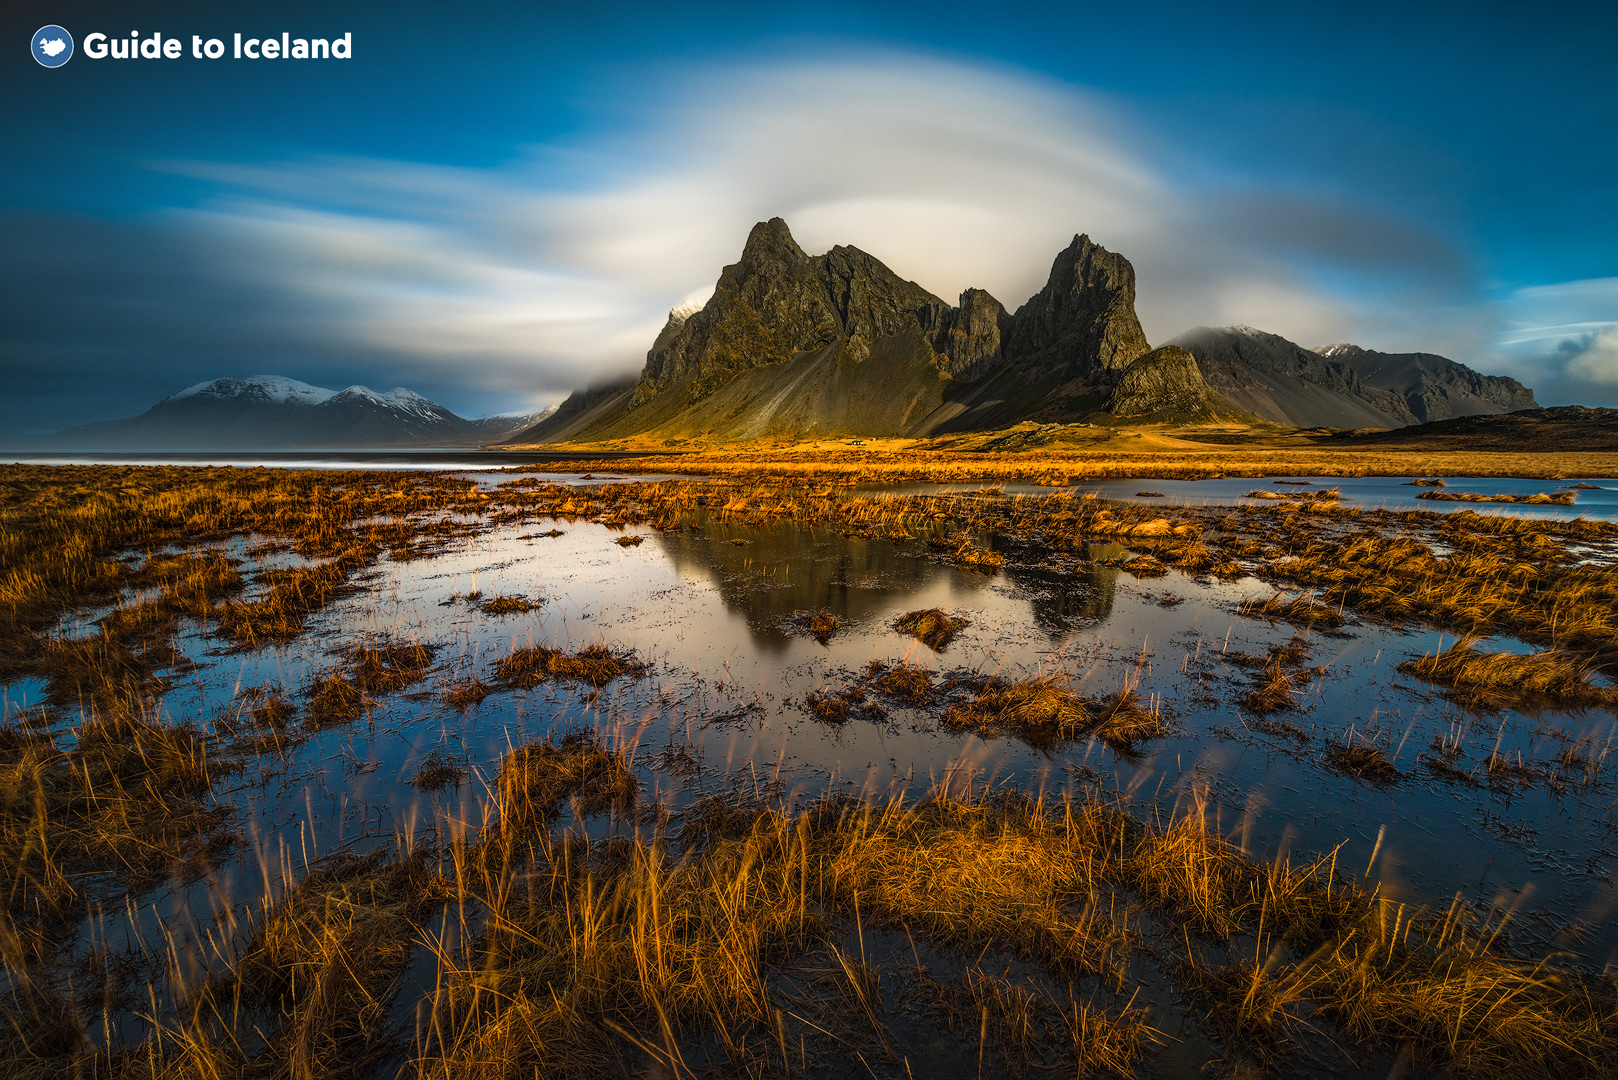 Eystrahorn Mountain in East Iceland overlooking a body of water in summer.